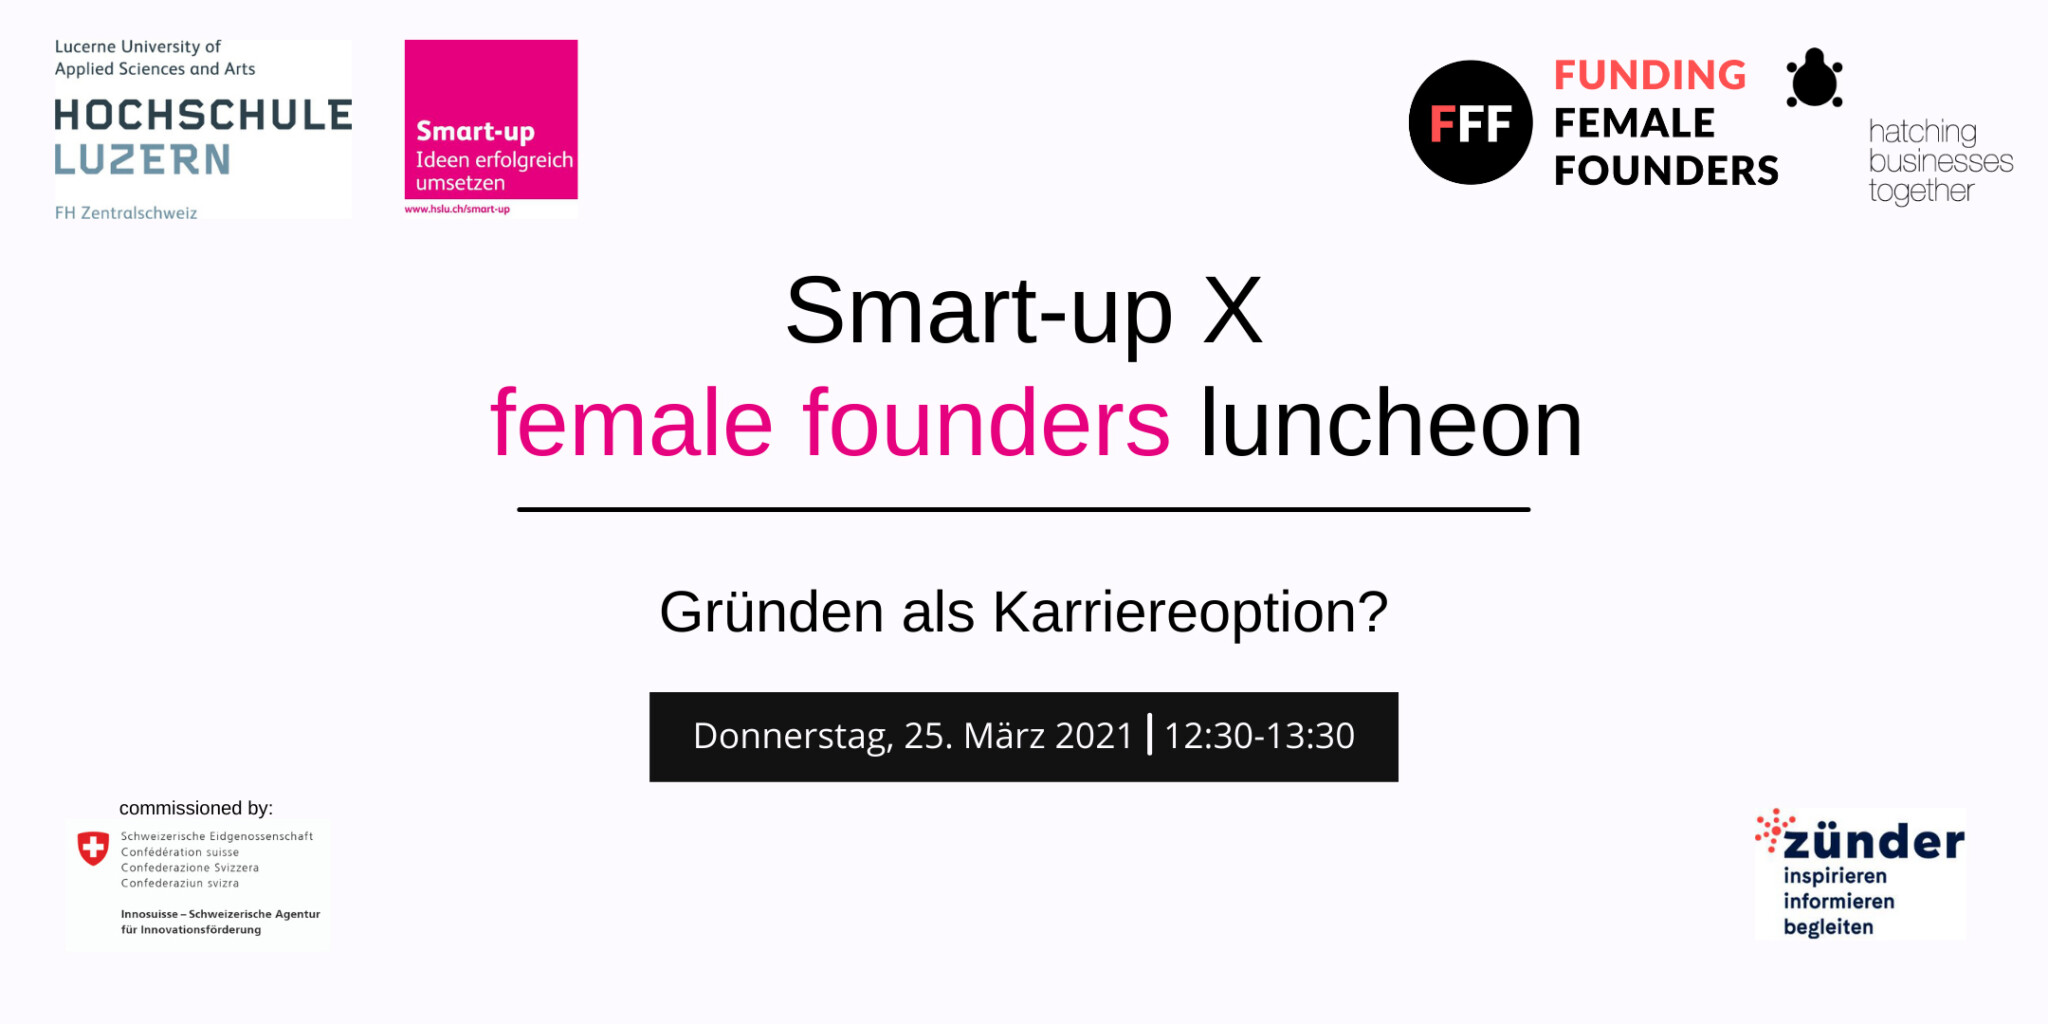 Onlineevent Smart-up X female founders luncheon